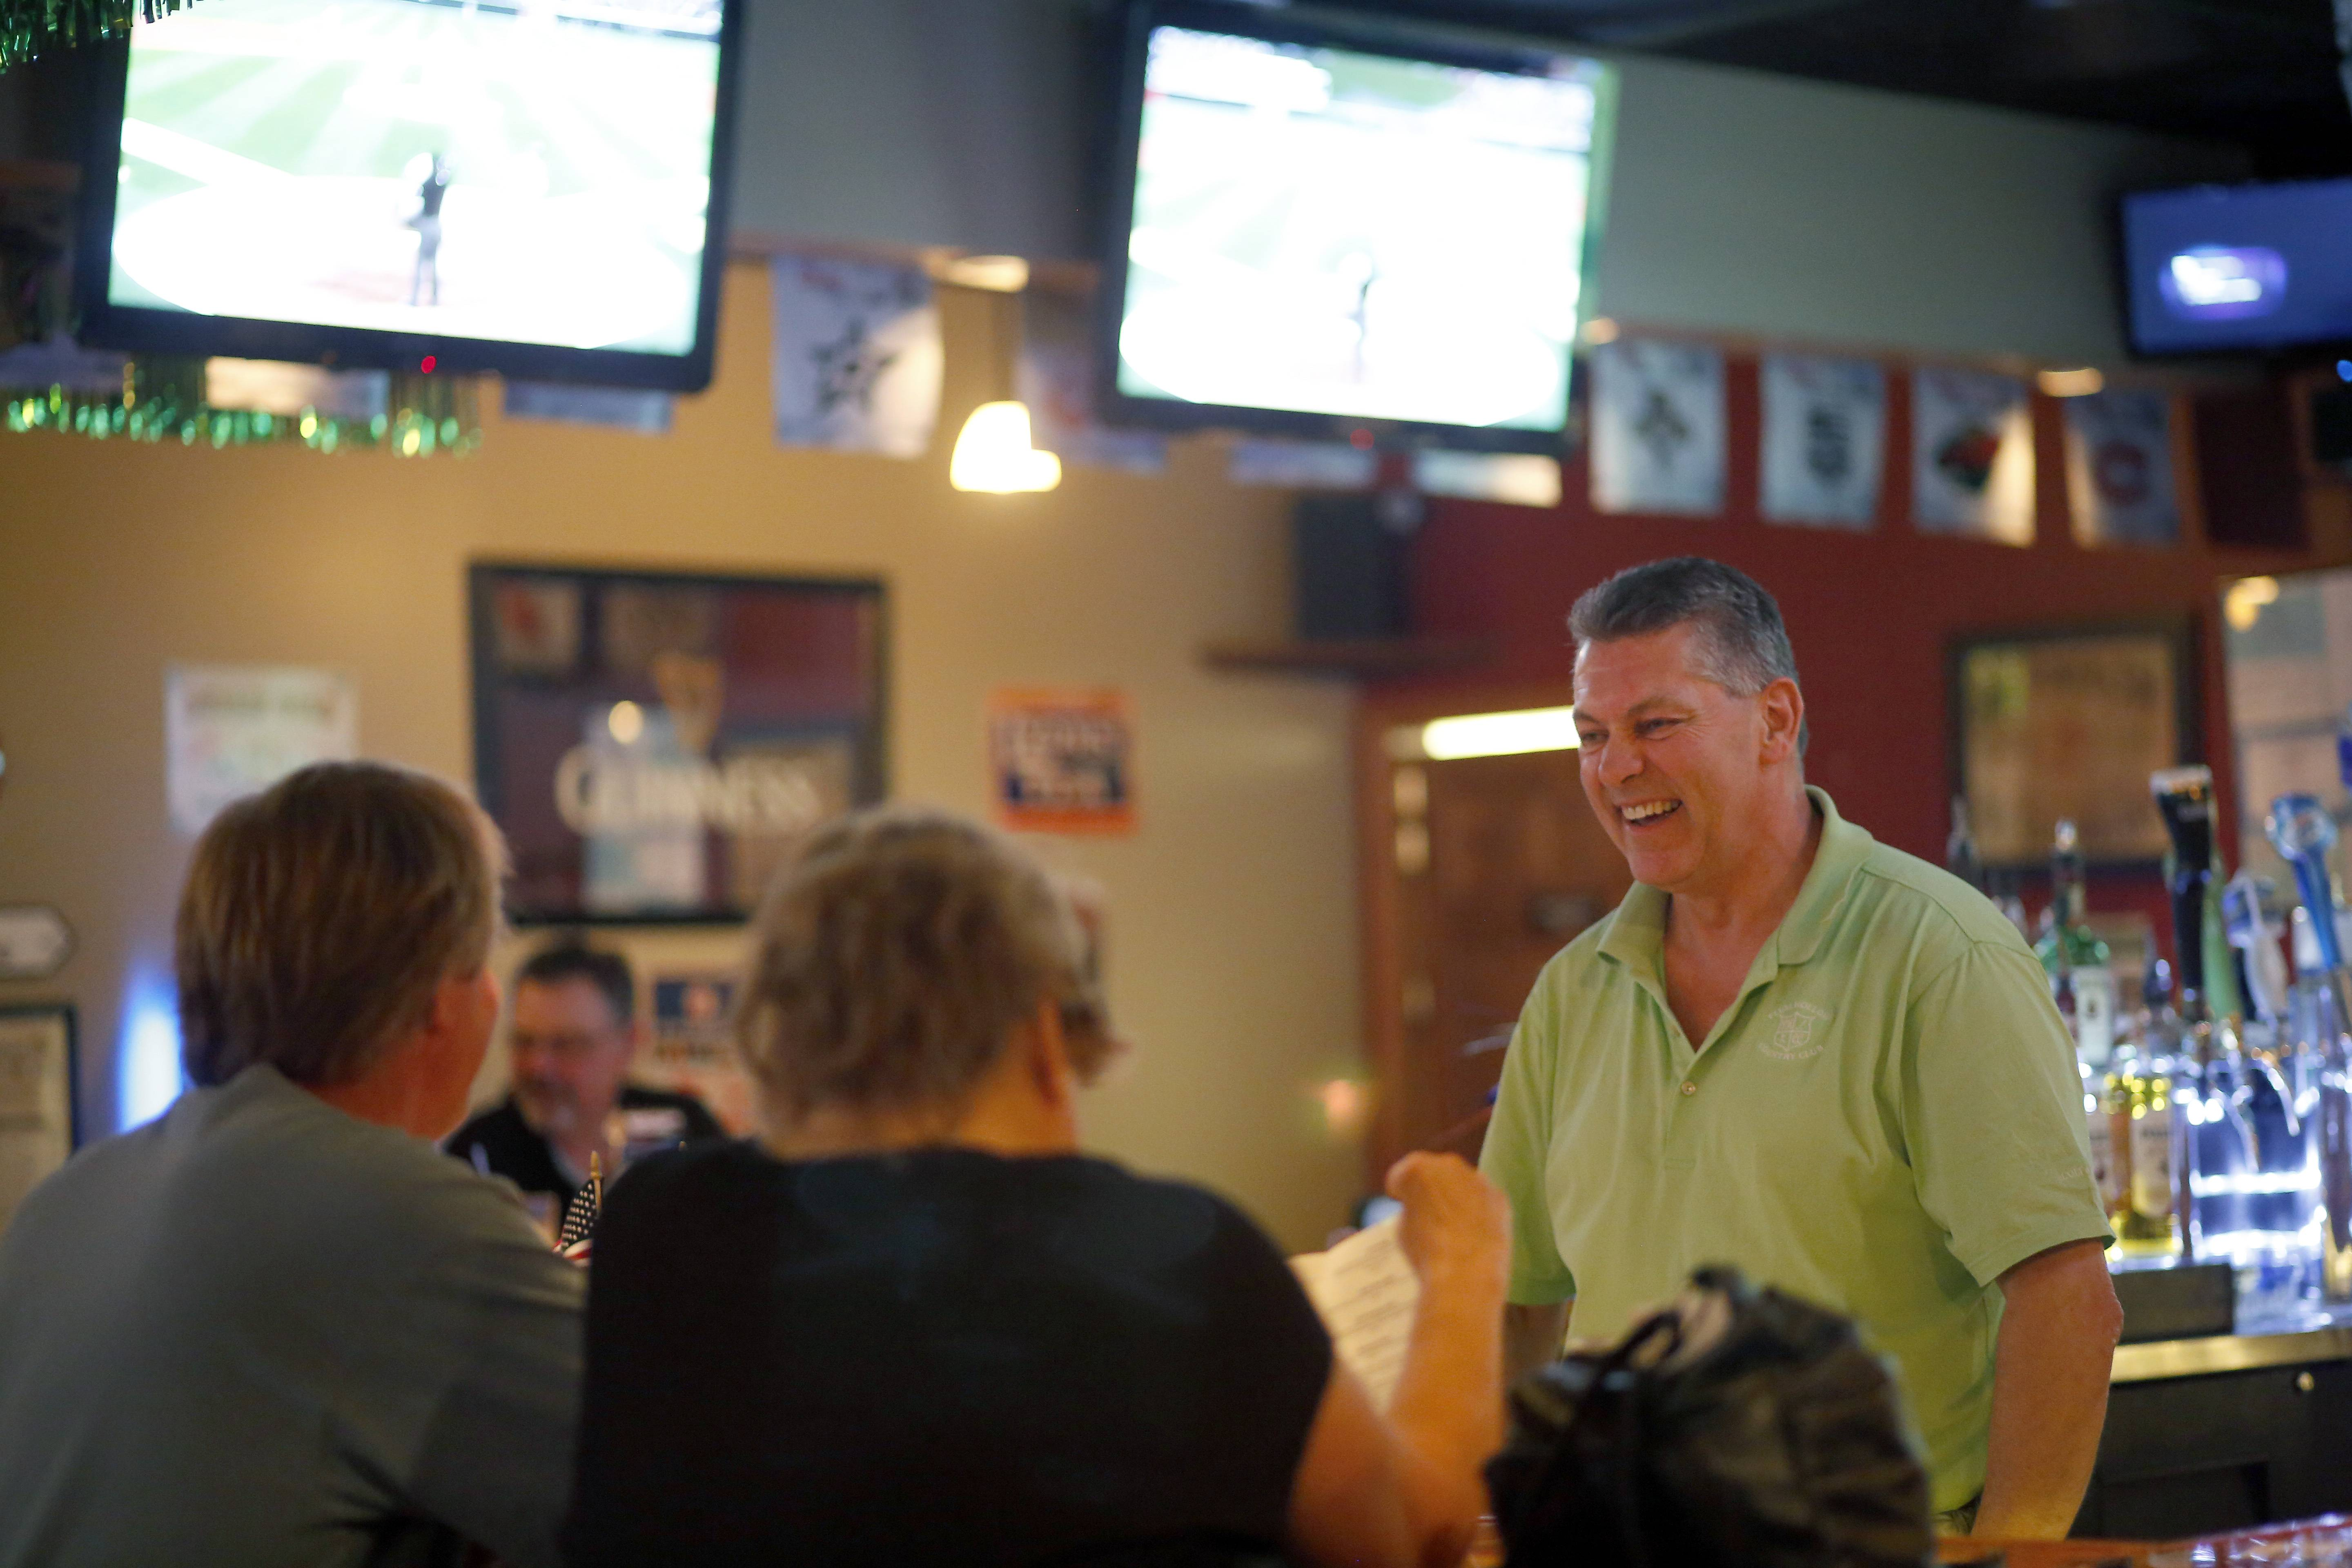 Bartender and co-owner Bill Vance chats with customers at O'Hare's Pub in Bartlett.